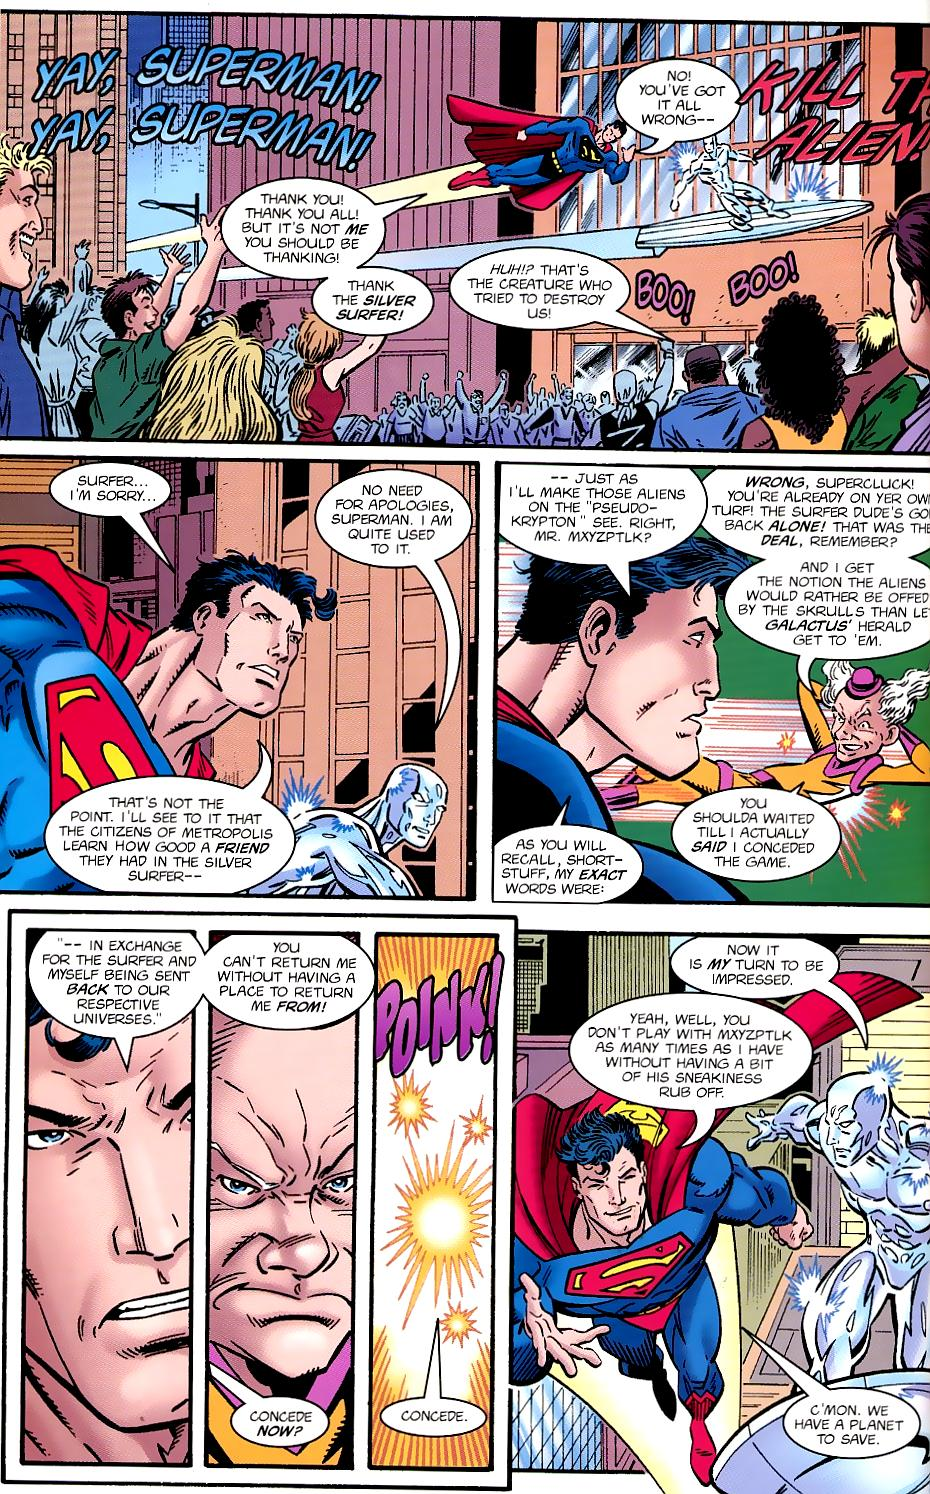 Read online Silver Surfer/Superman comic -  Issue # Full - 44